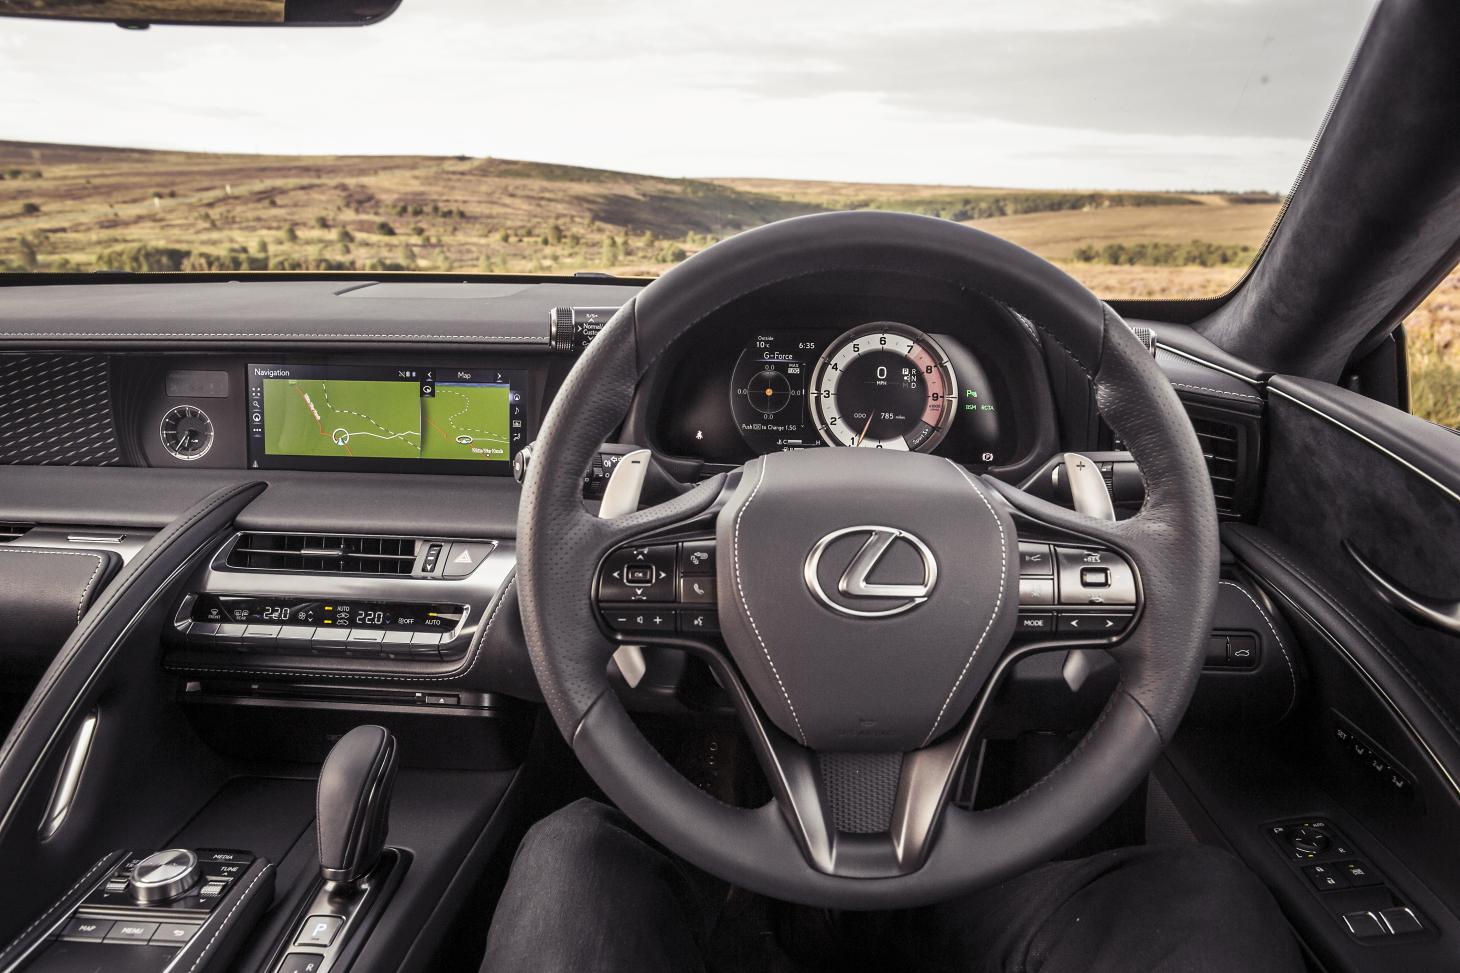 Lexus LC 500 dashboard and cockpit